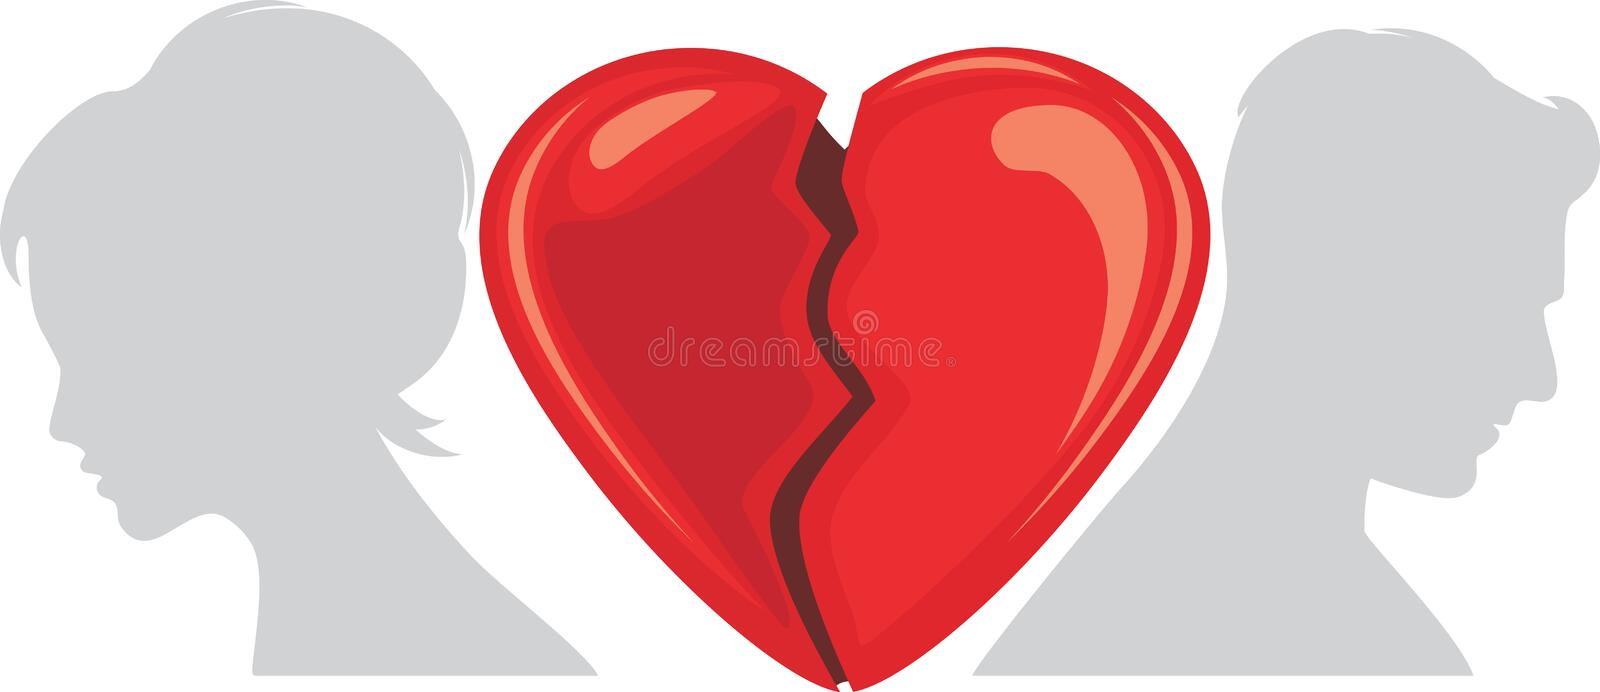 Broken Heart Stock Vector Illustration Of Feeling Beautiful 91075836